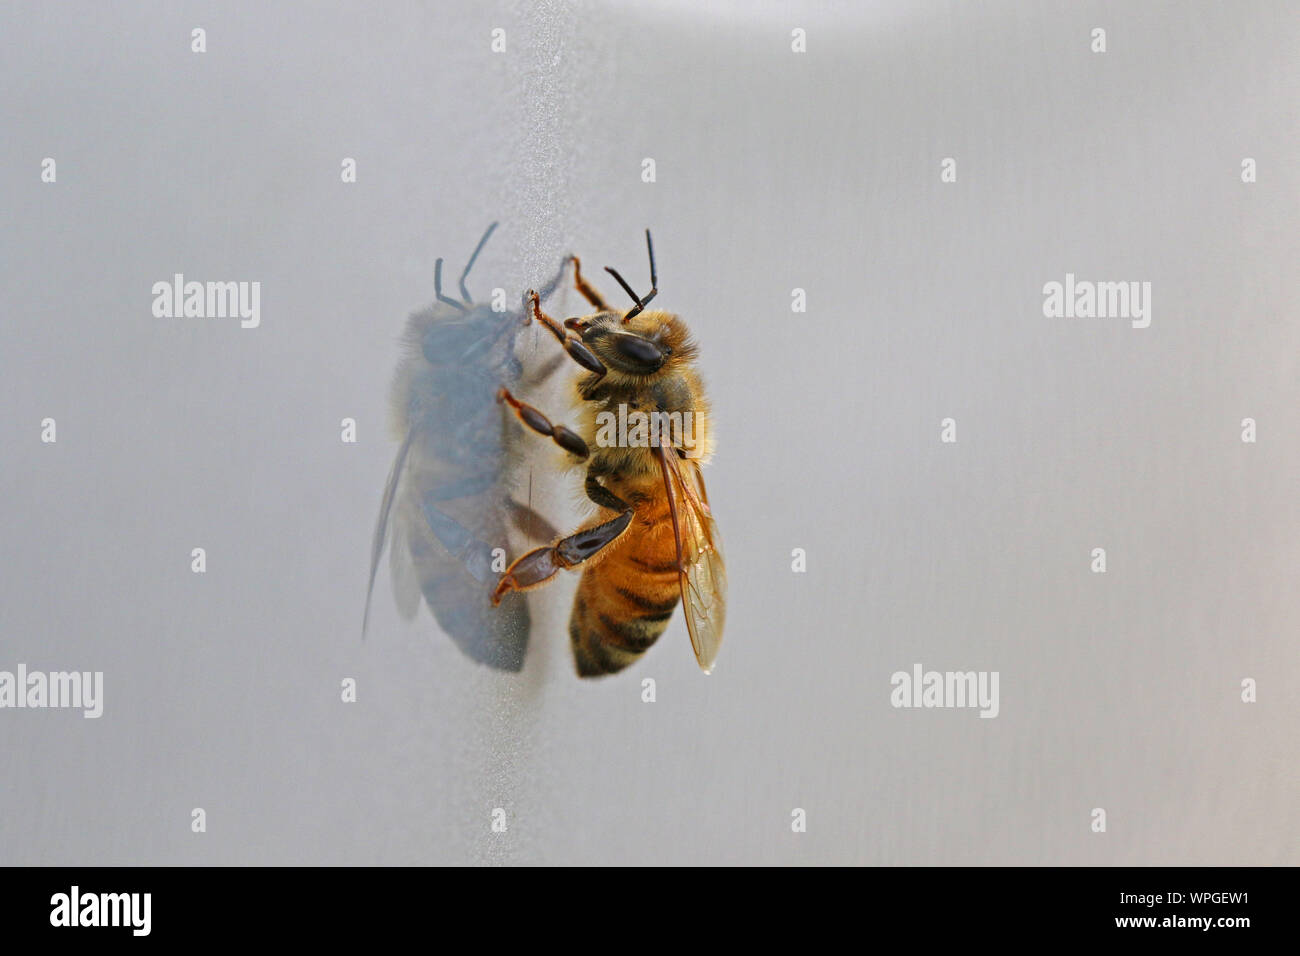 honey bee or worker bee extreme close up Latin apis mellifera crawling on a shiny surface in springtime in Italy Stock Photo